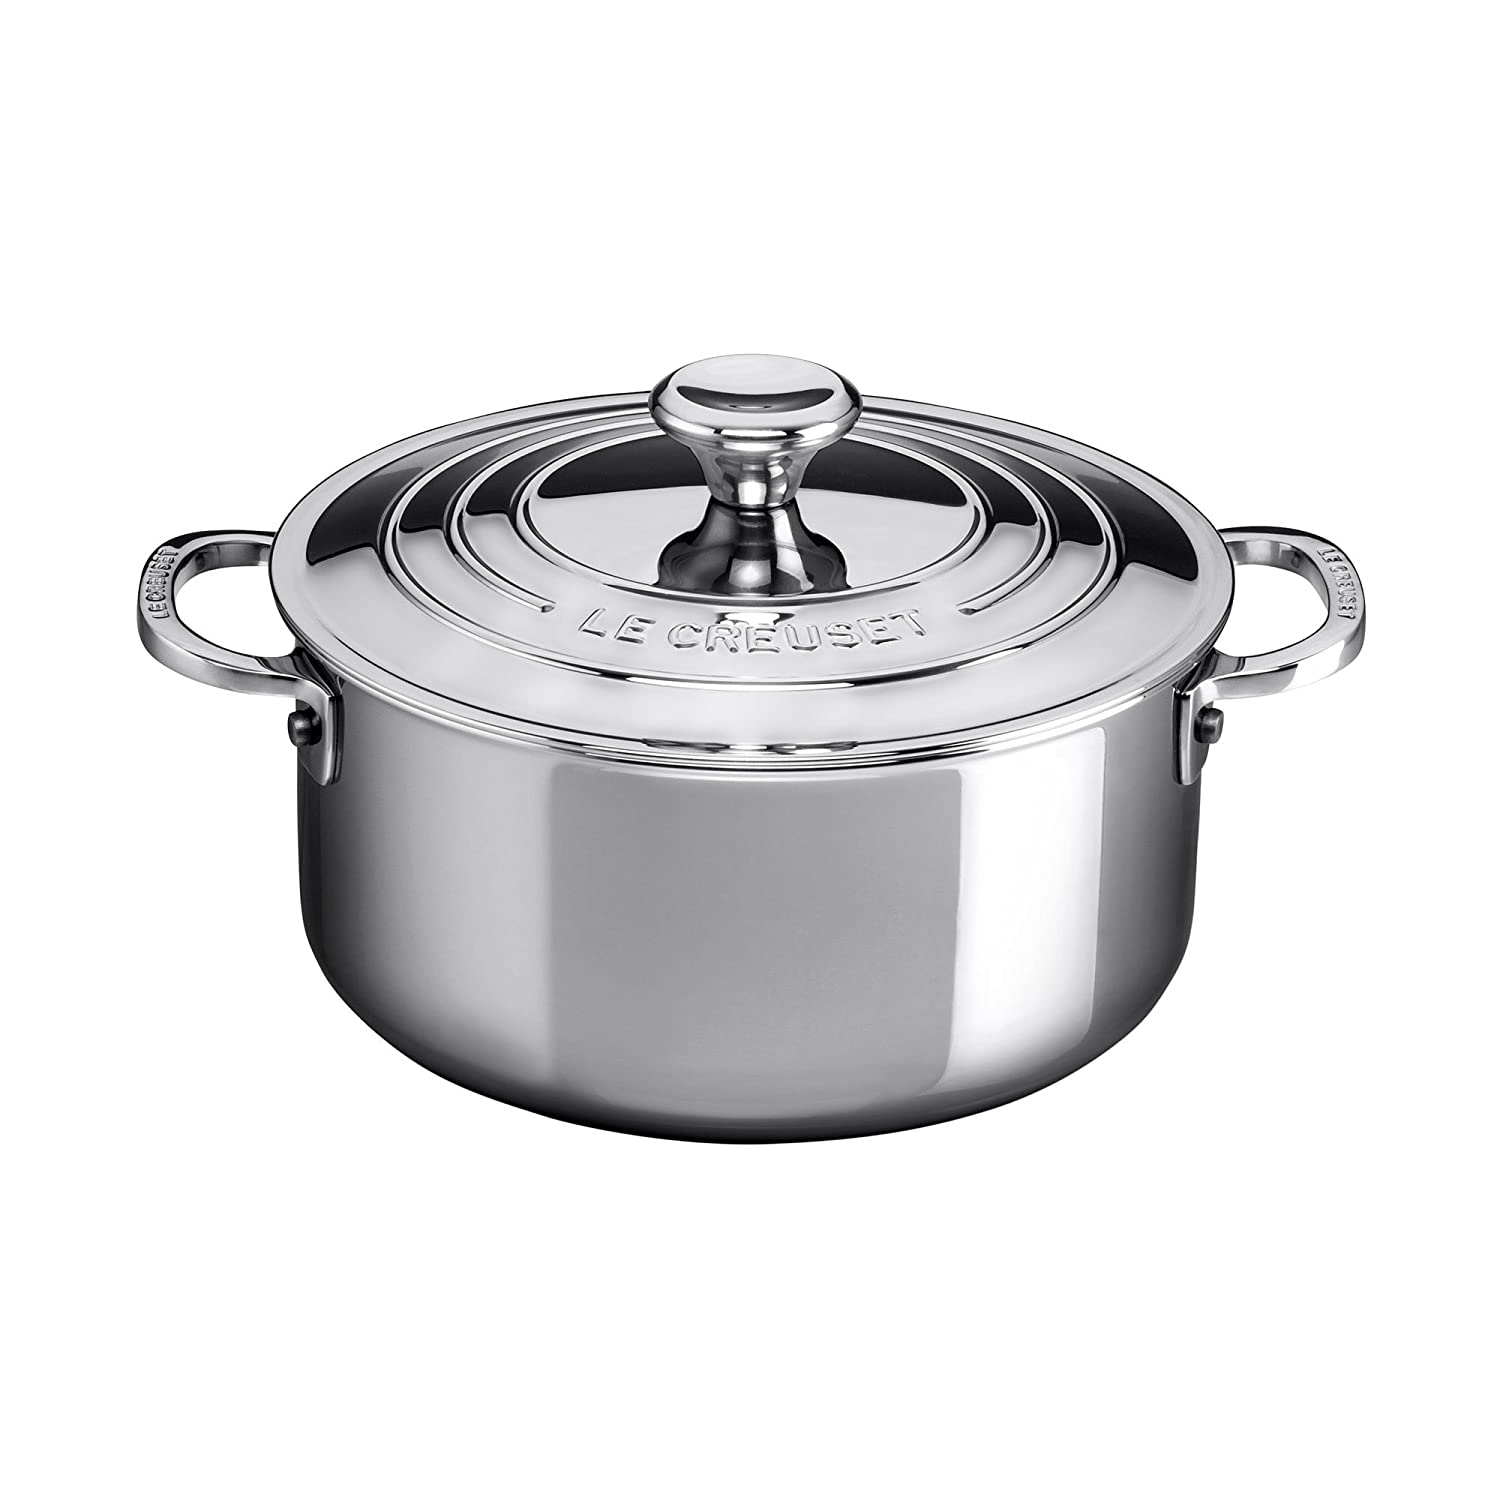 Le Creuset SSP3000-24 Stainless Steel 5.5 quart Shallow Casserole with Lid